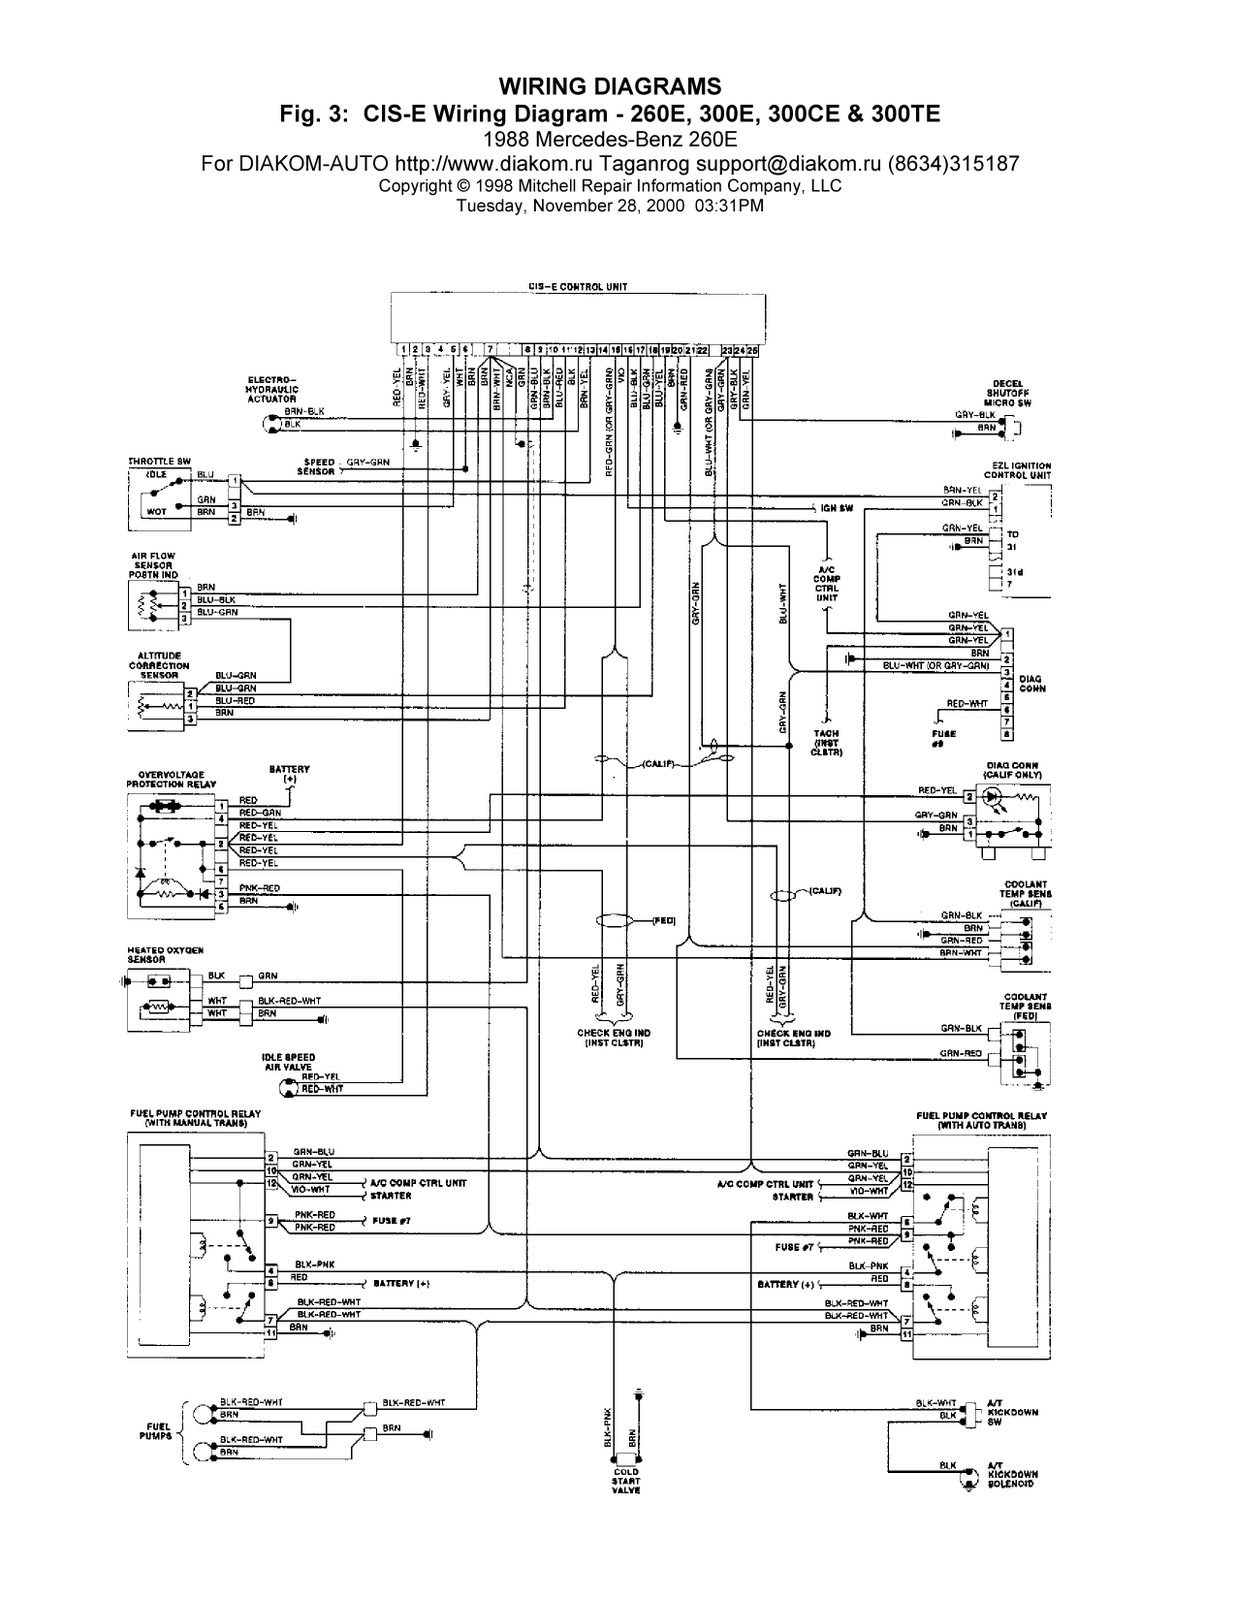 Mercedes Benz Wiring Diagrams Free Ez Efi Diagram Ford Transit Connect Fuse Box Engine